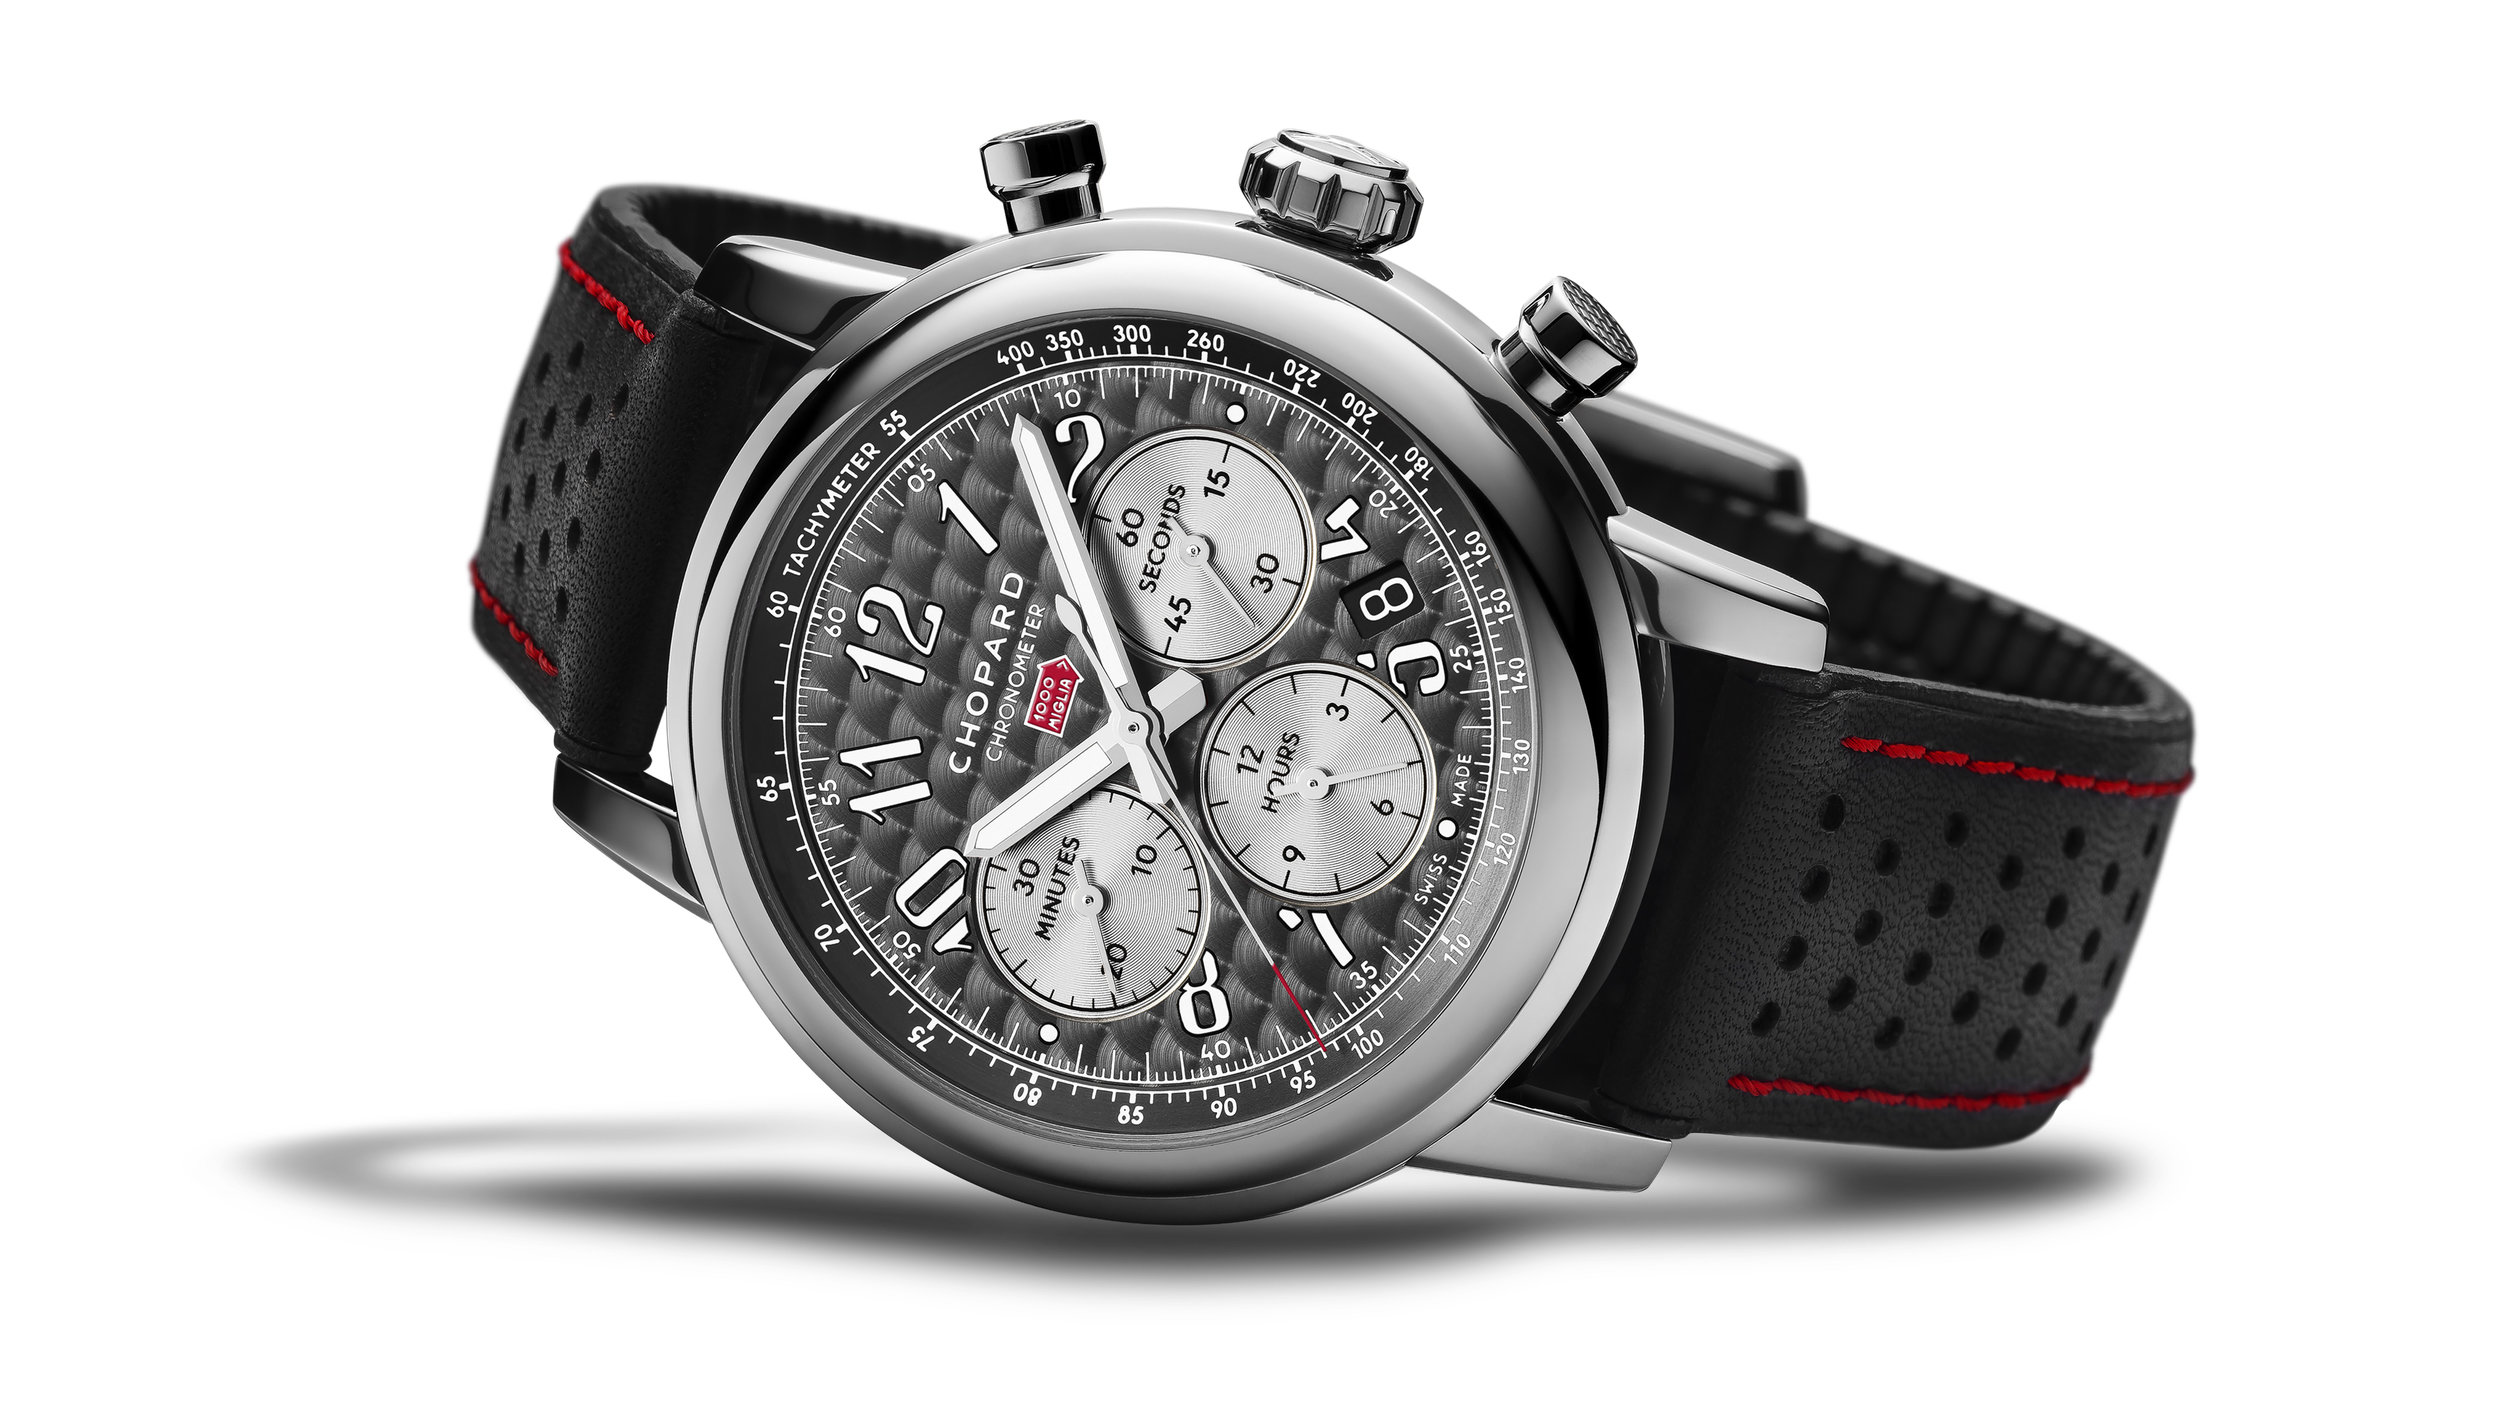 The Mille Miglia 2018 Race Edition - The stylish 42mm watch in stainless steel, equipped with a mechanical chronograph movement with automatic winding. The timepiece is presented on a black calfskin bracelet with red stitching and black rubber lining. Limited to 1,000 pieces.